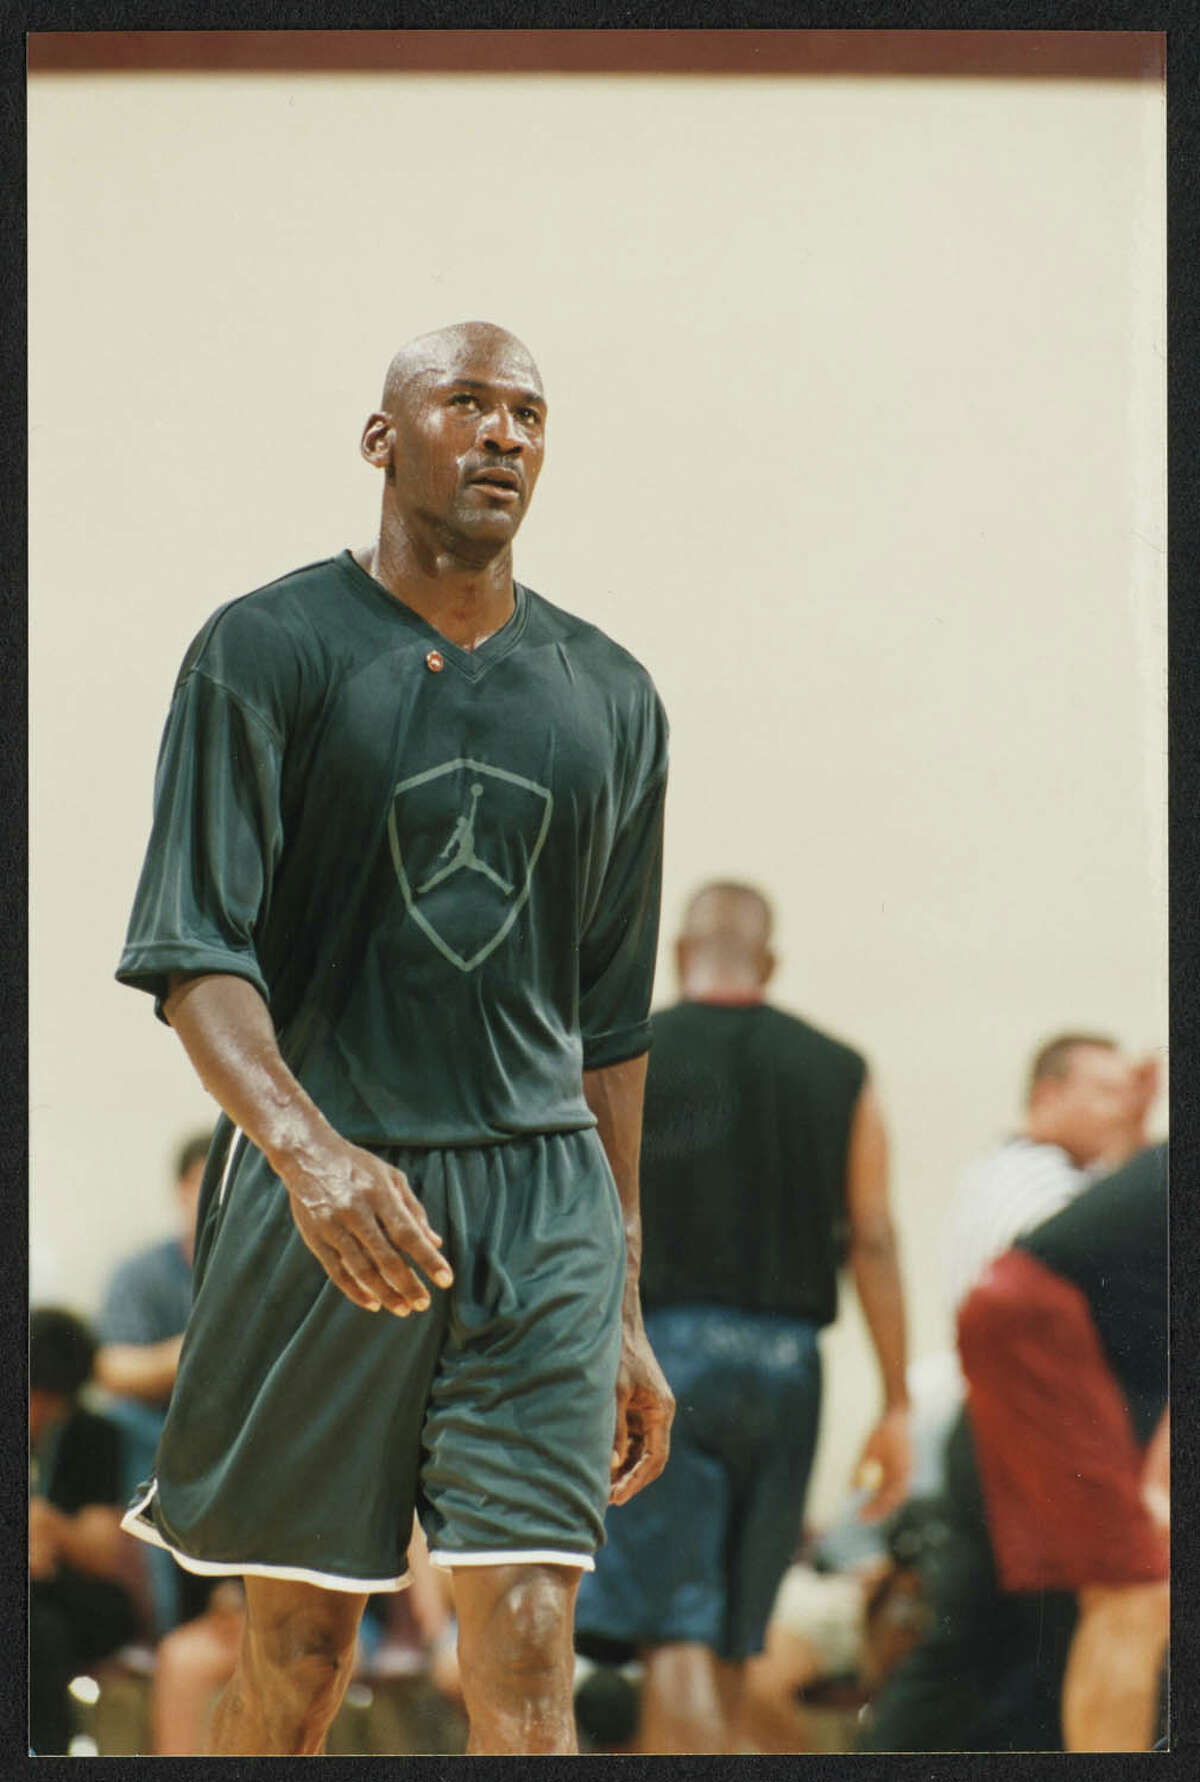 Texas State University dug into the school's archives to share 22-year-old photos showing Jordan playing at Strahan Coliseum for a charity event. The university shared a few more photos with mySA in addition to those shots that were tweeted over the weekend.The photos show a then 35-year-old Jordan participating in the June 22 1998